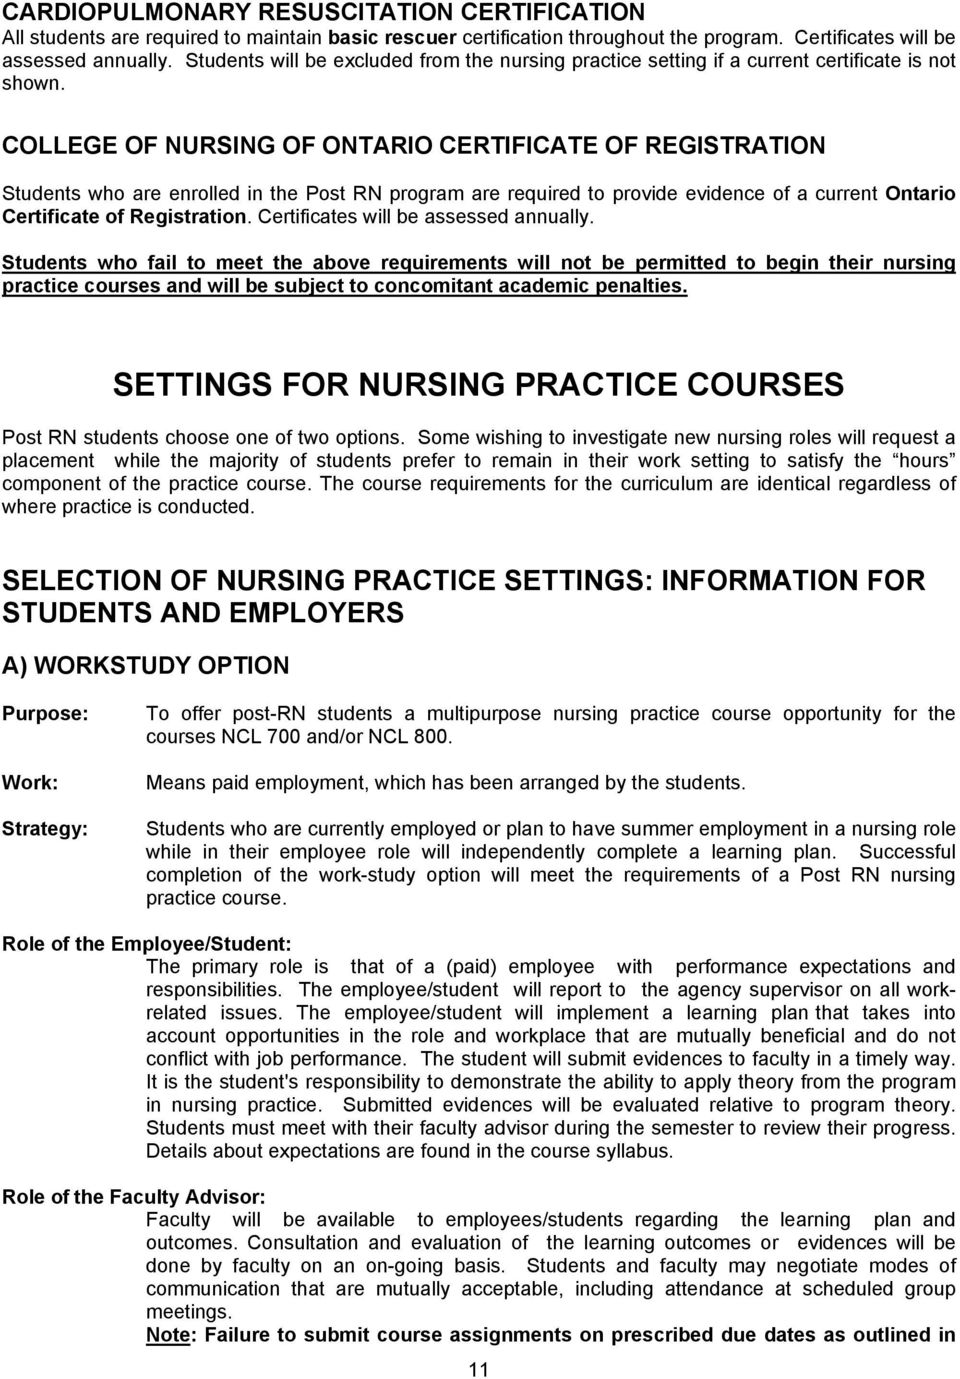 COLLEGE OF NURSING OF ONTARIO CERTIFICATE OF REGISTRATION Students who are enrolled in the Post RN program are required to provide evidence of a current Ontario Certificate of Registration.